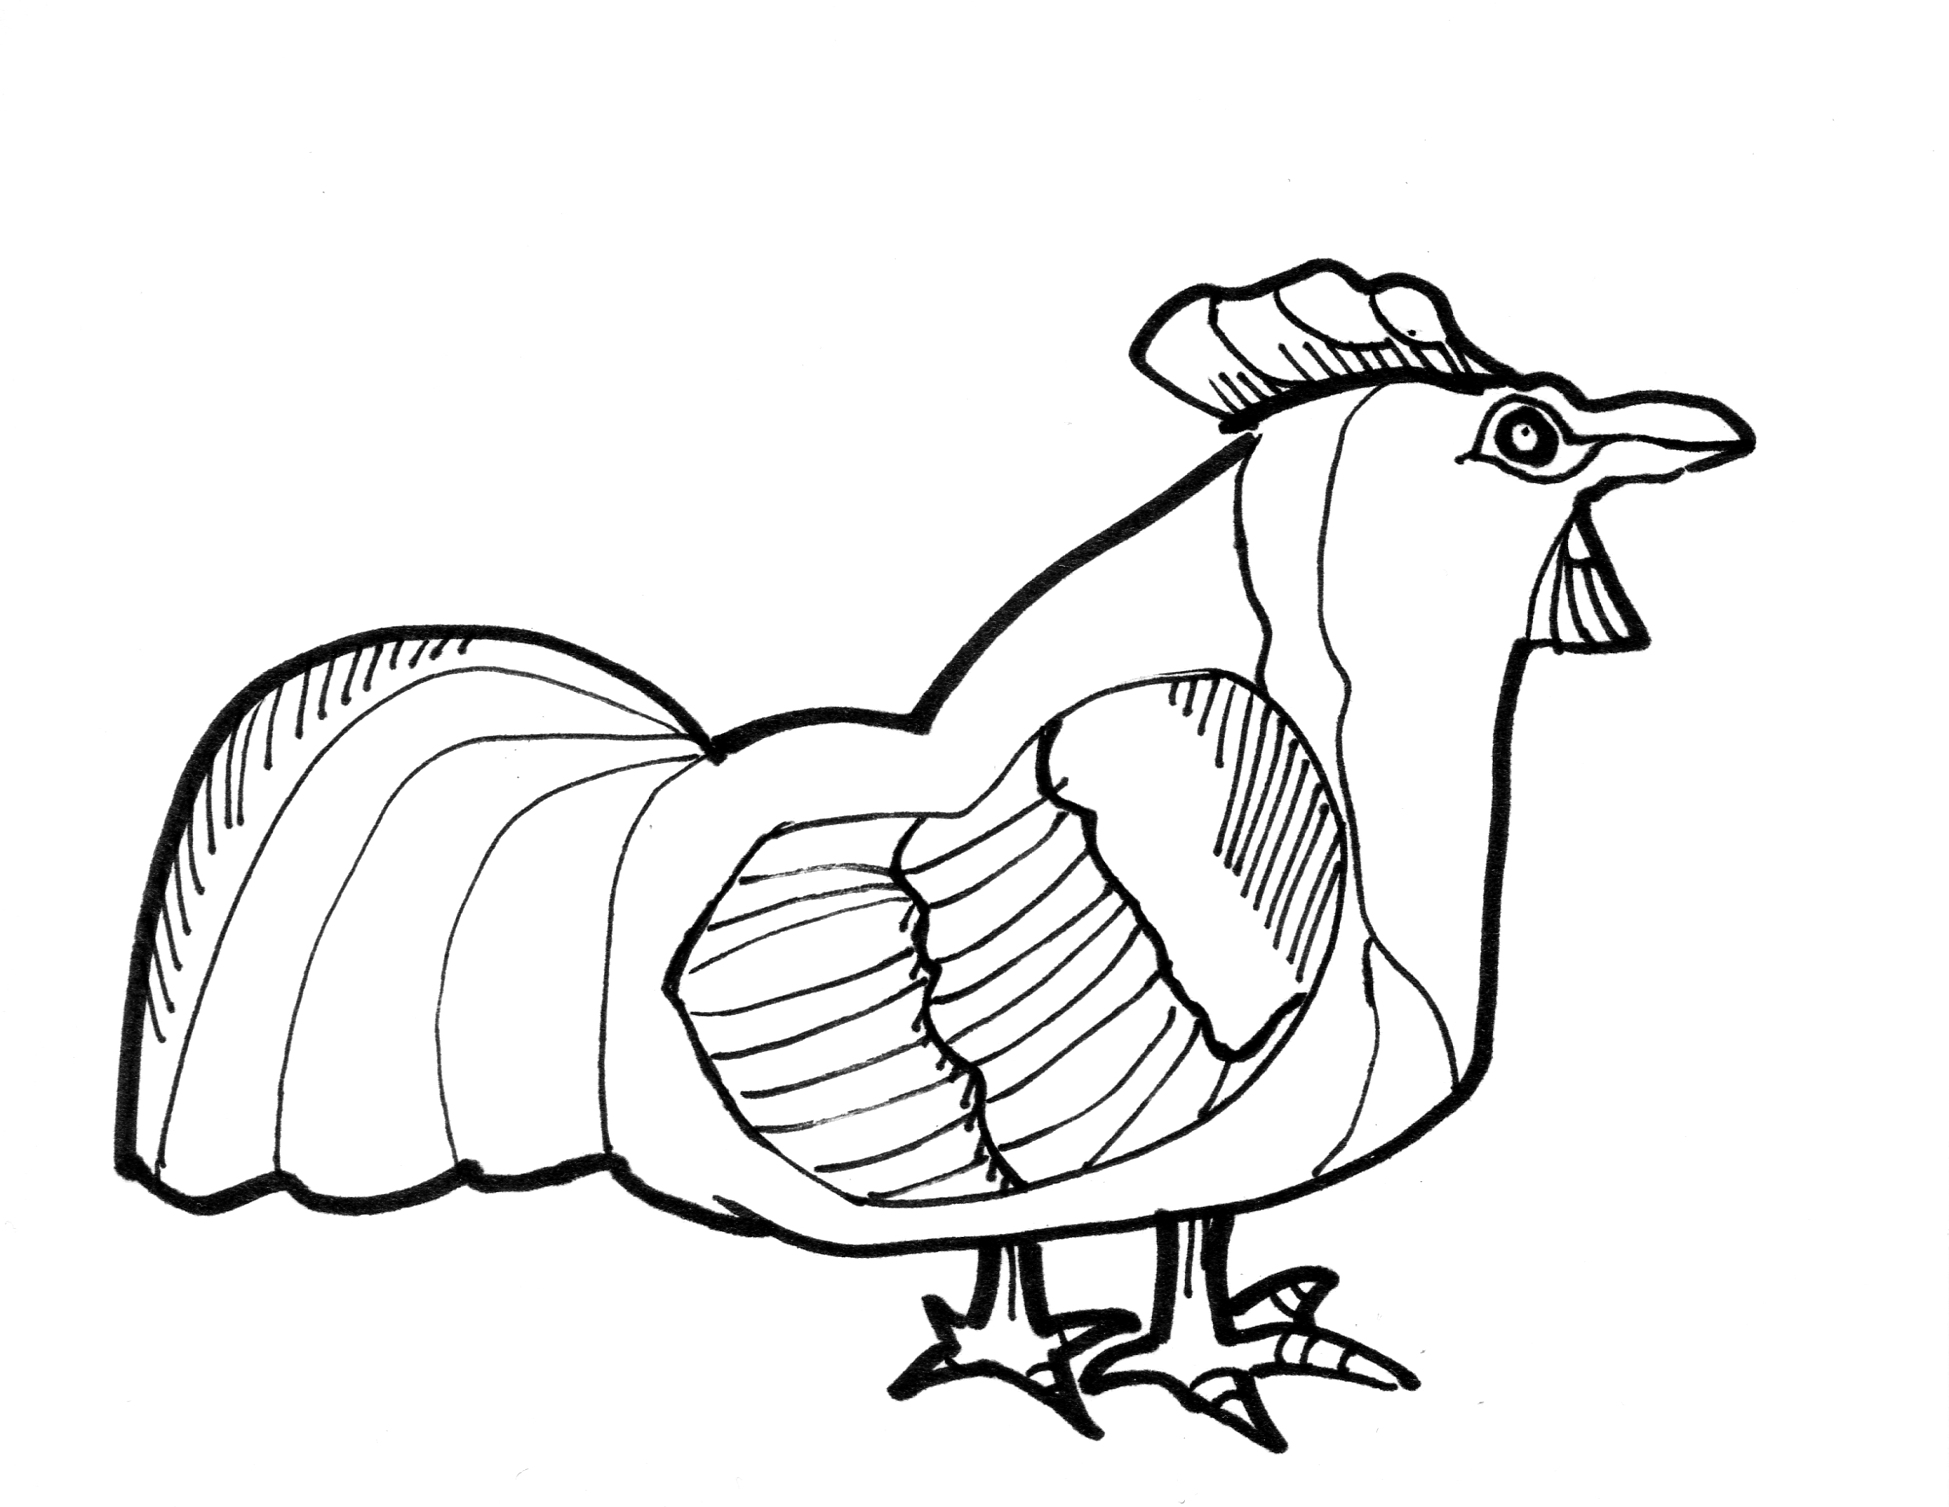 how to draw a rooster home spun around saturday art school how to draw a rooster a draw to how rooster